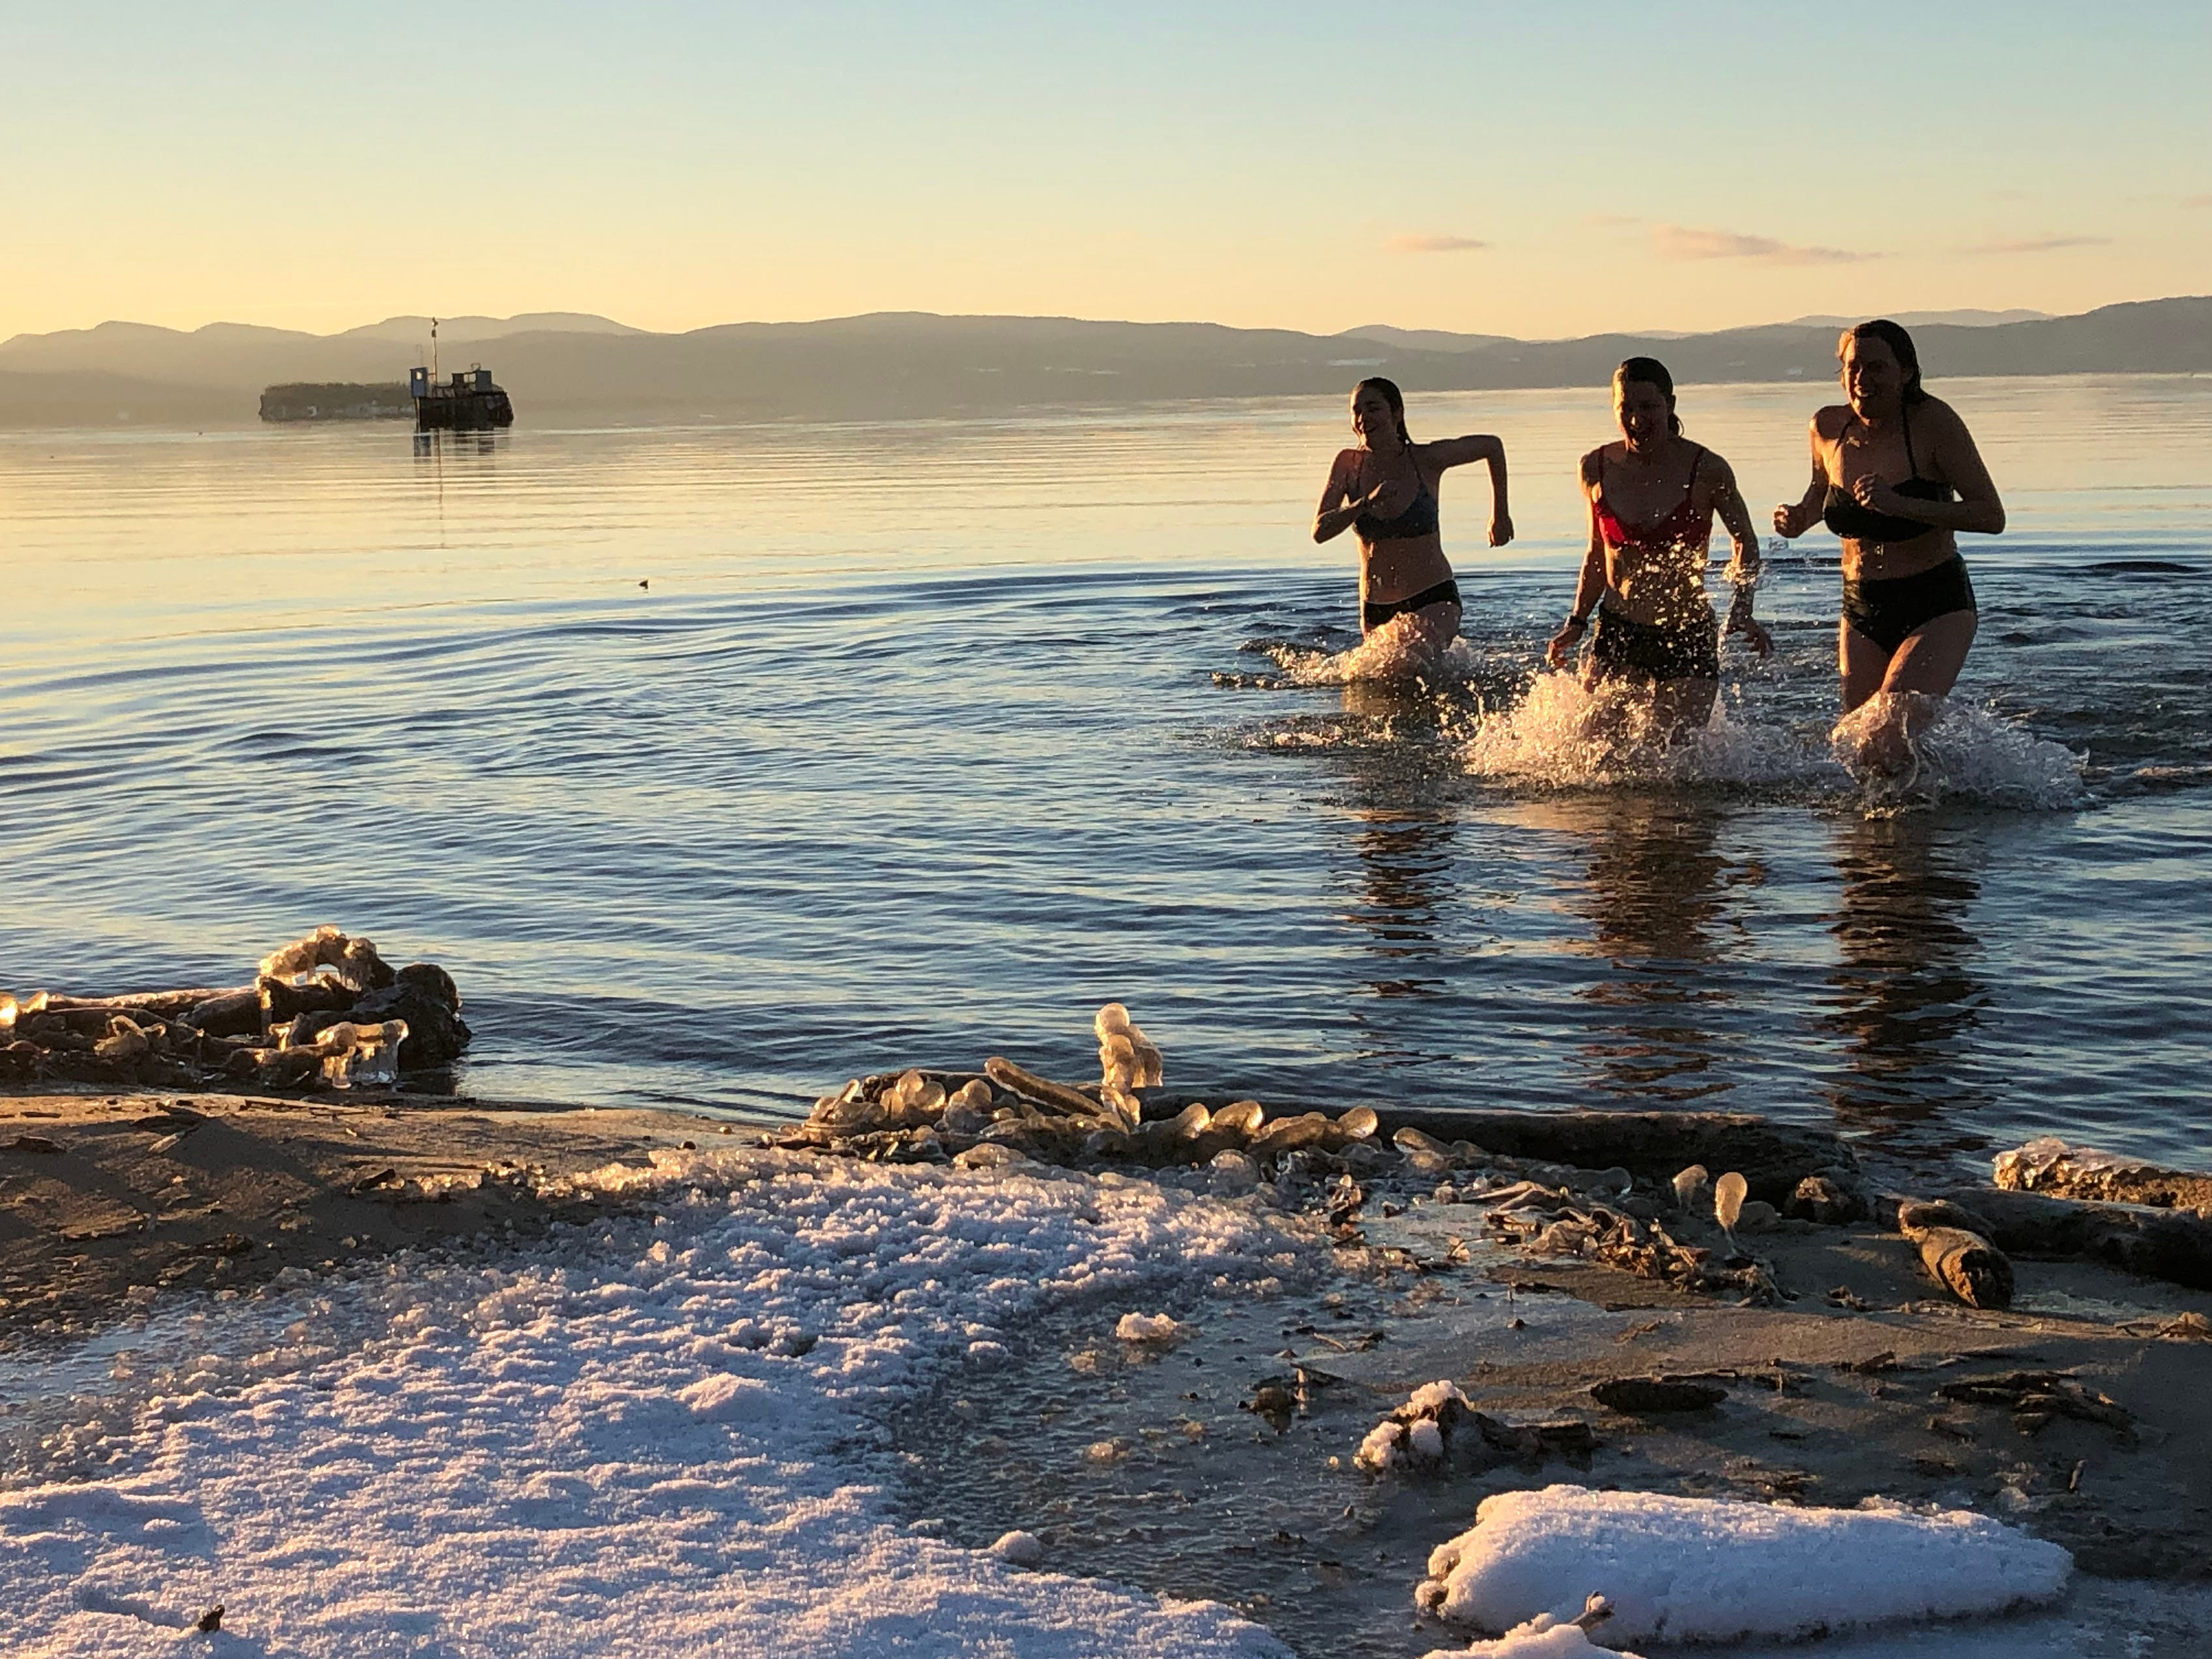 Katharine Montstream of Burlington (at right) dashes back to Oakledge beach after a quick dip with her sister, Sydney Montstream-Quas (center) and daughter, Charlotte Dworshak, on Dec. 25, 2018.